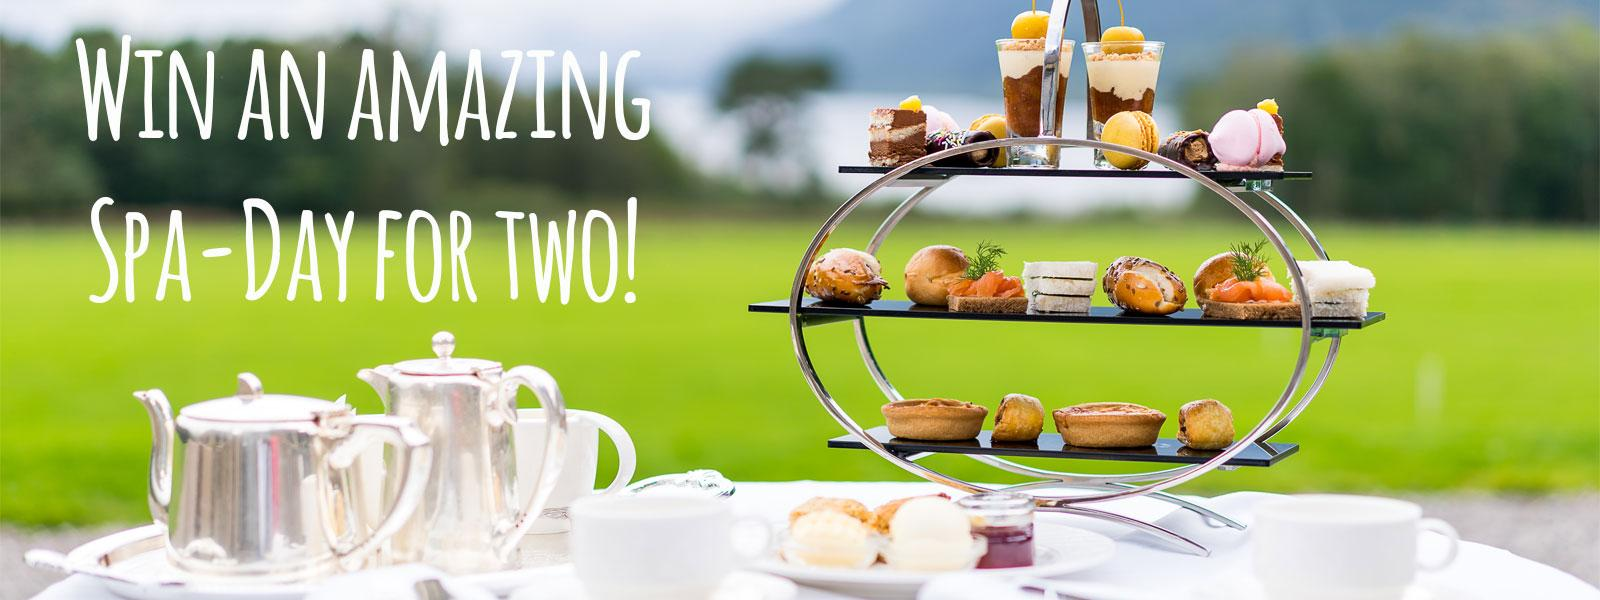 The afternoon tea which is included in the Spa day